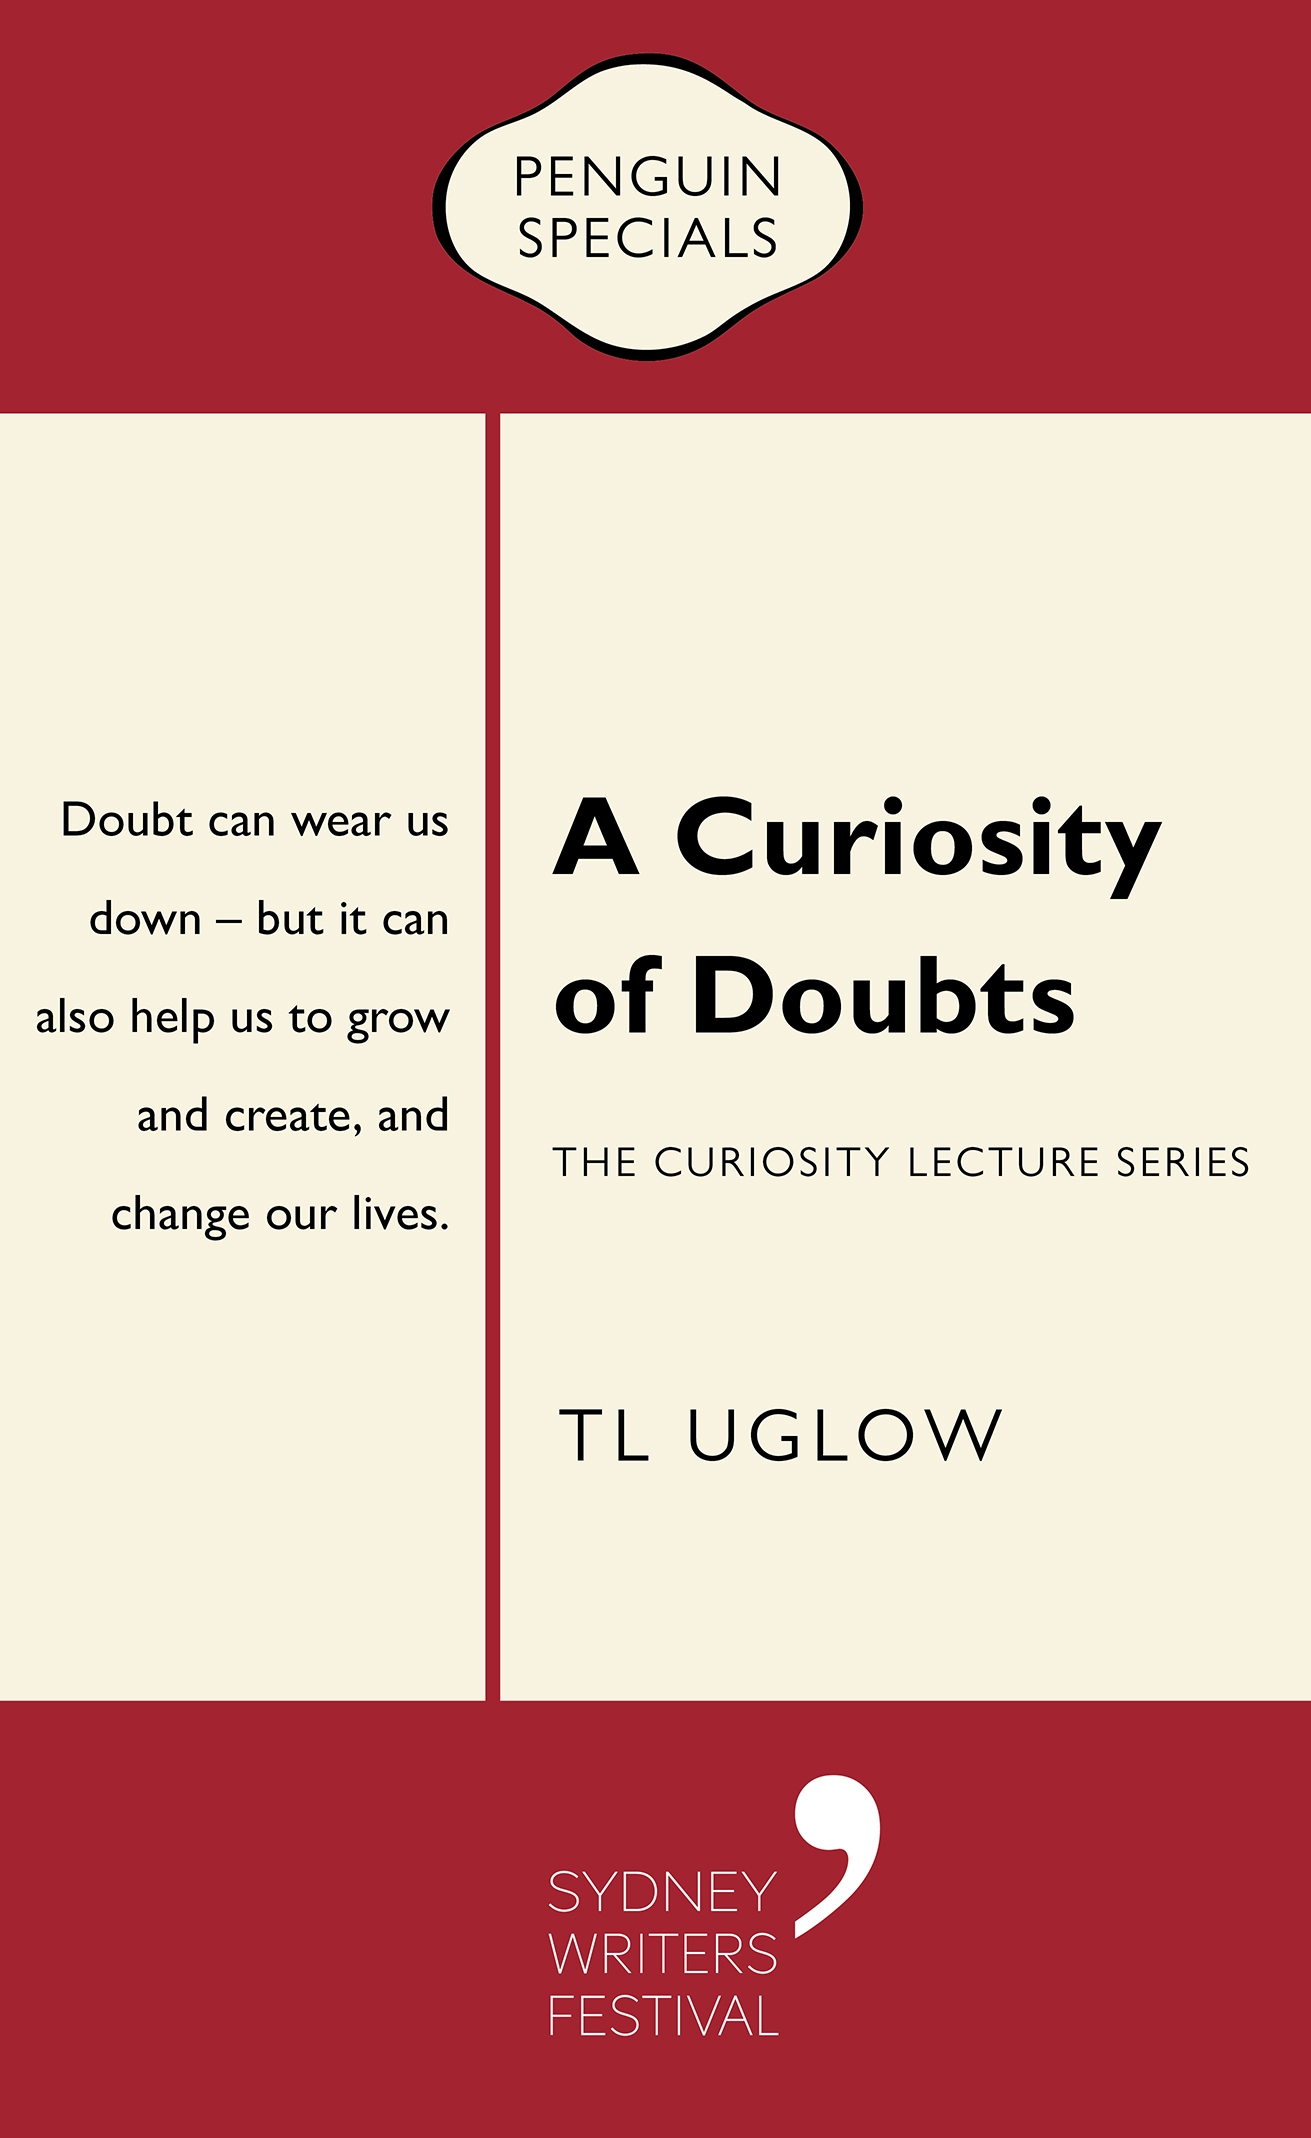 A Curiosity of Doubts book cover